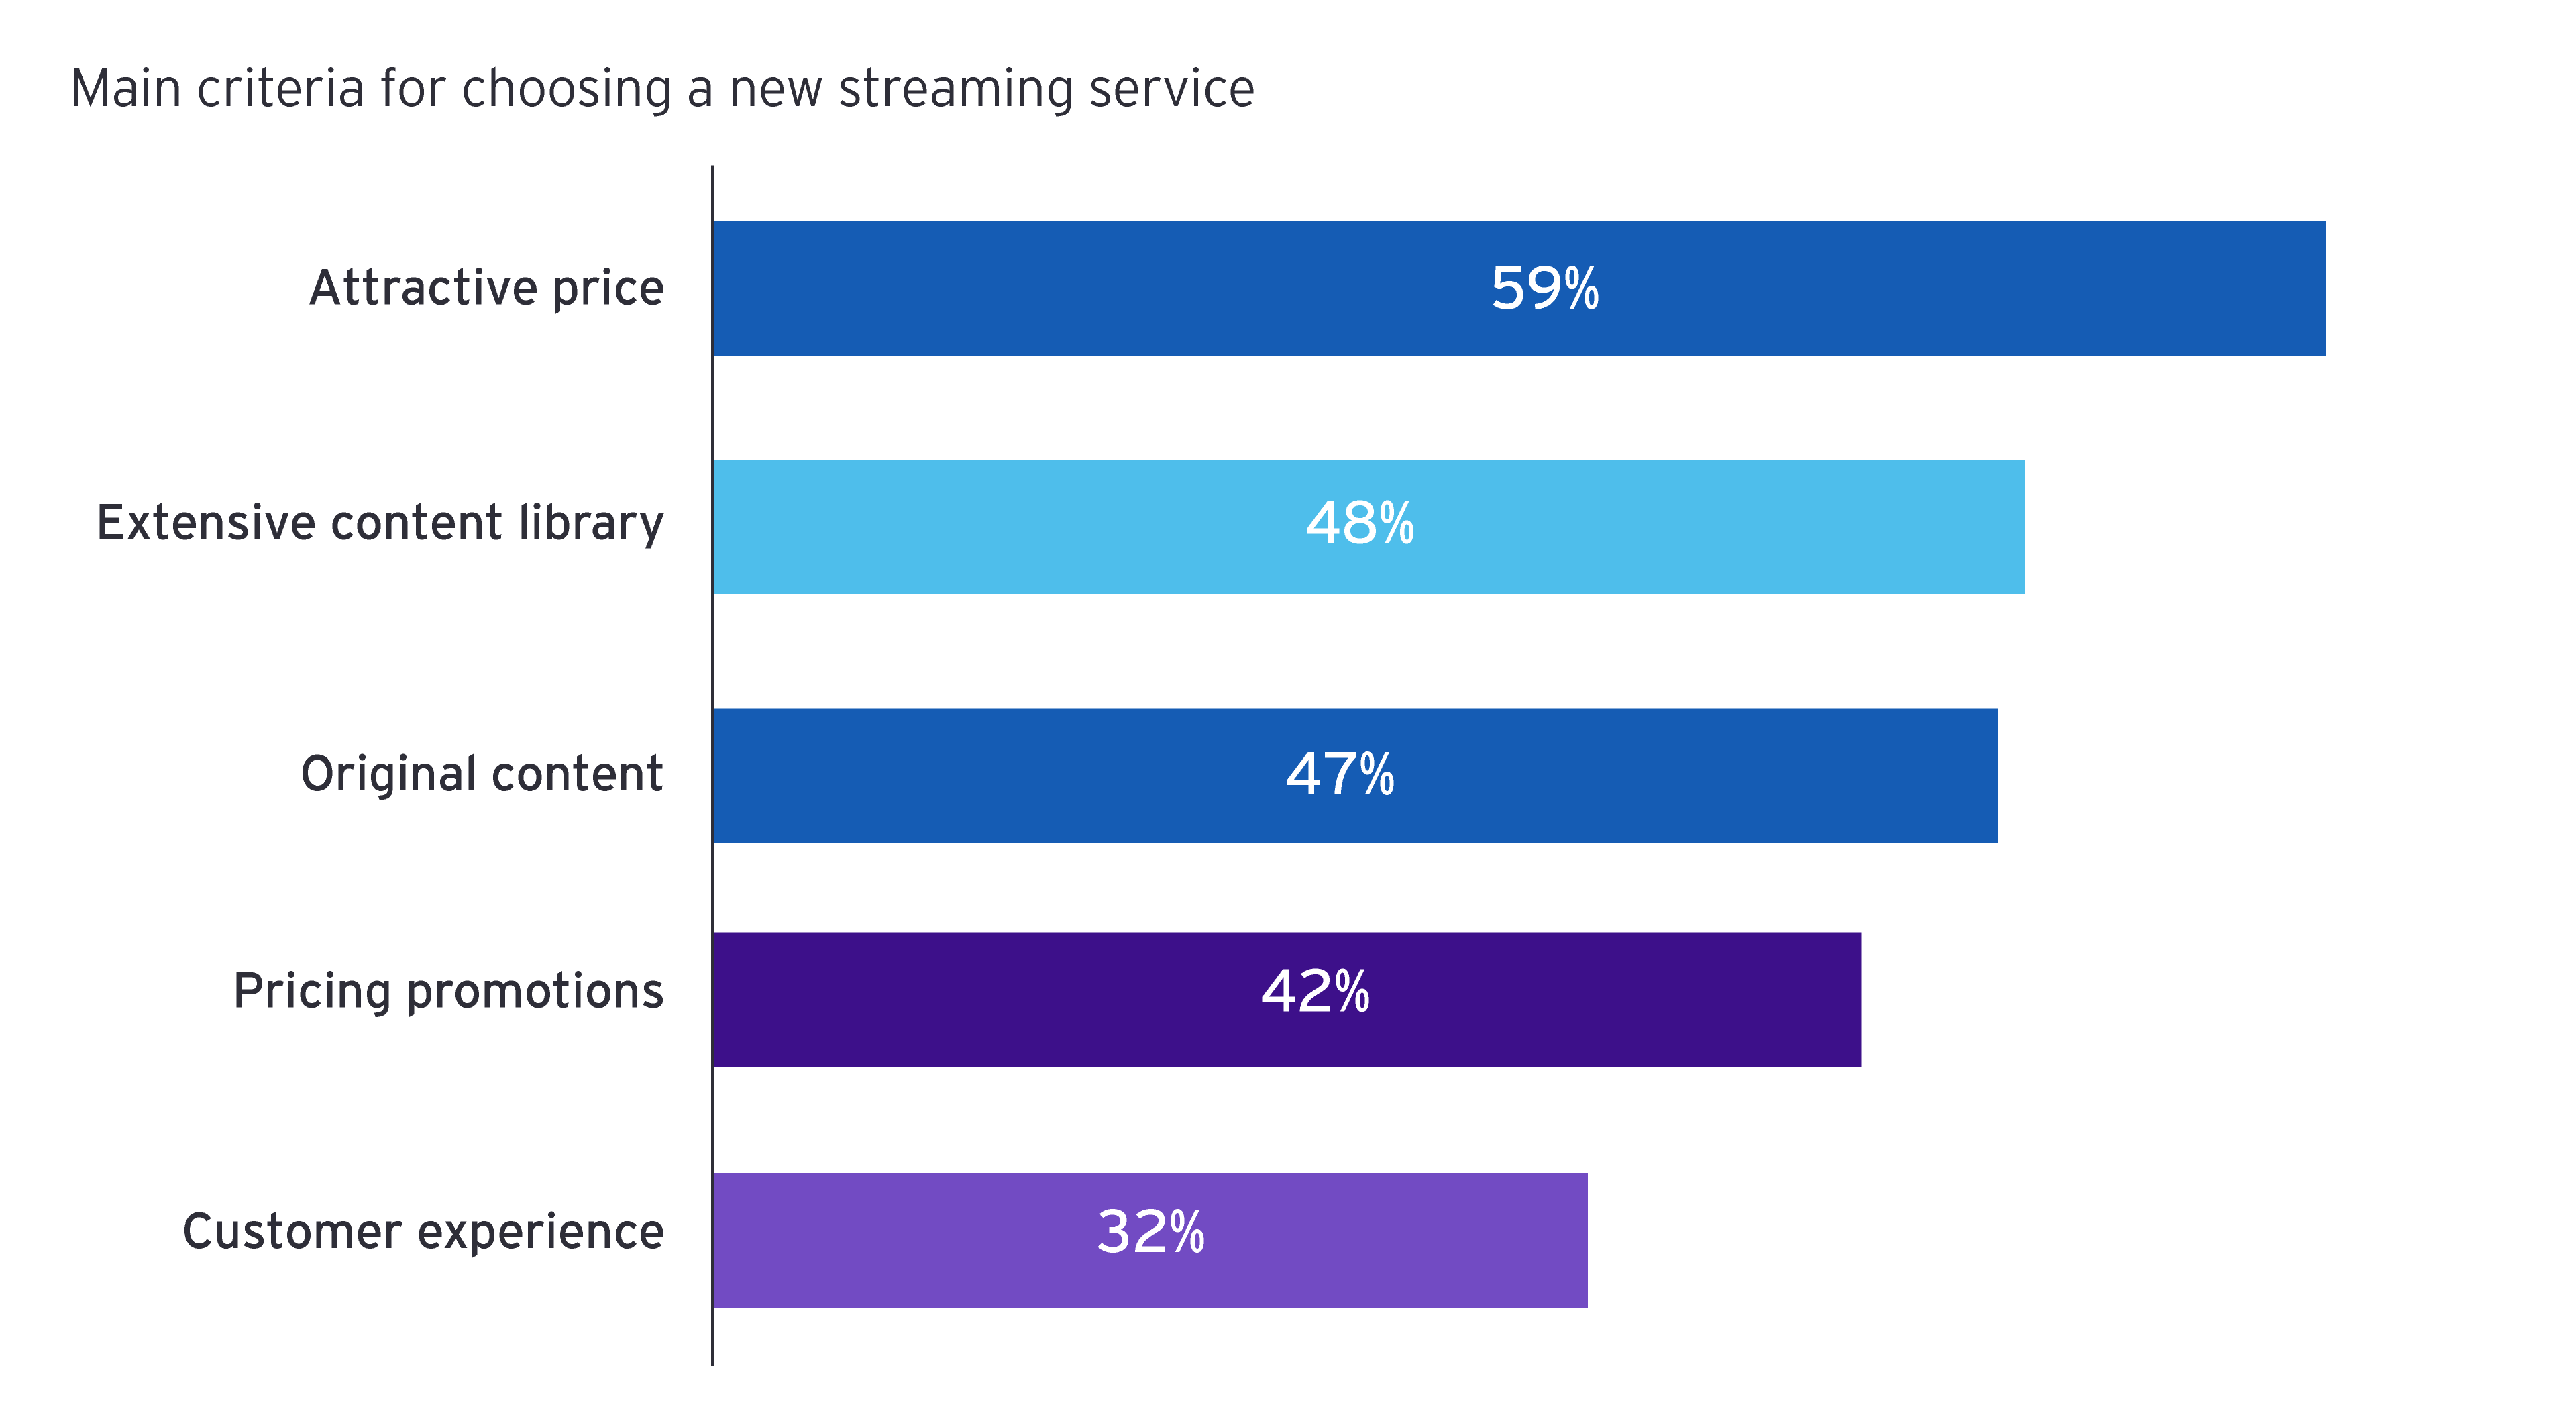 EY - Main criteria for choosing a new streaming service